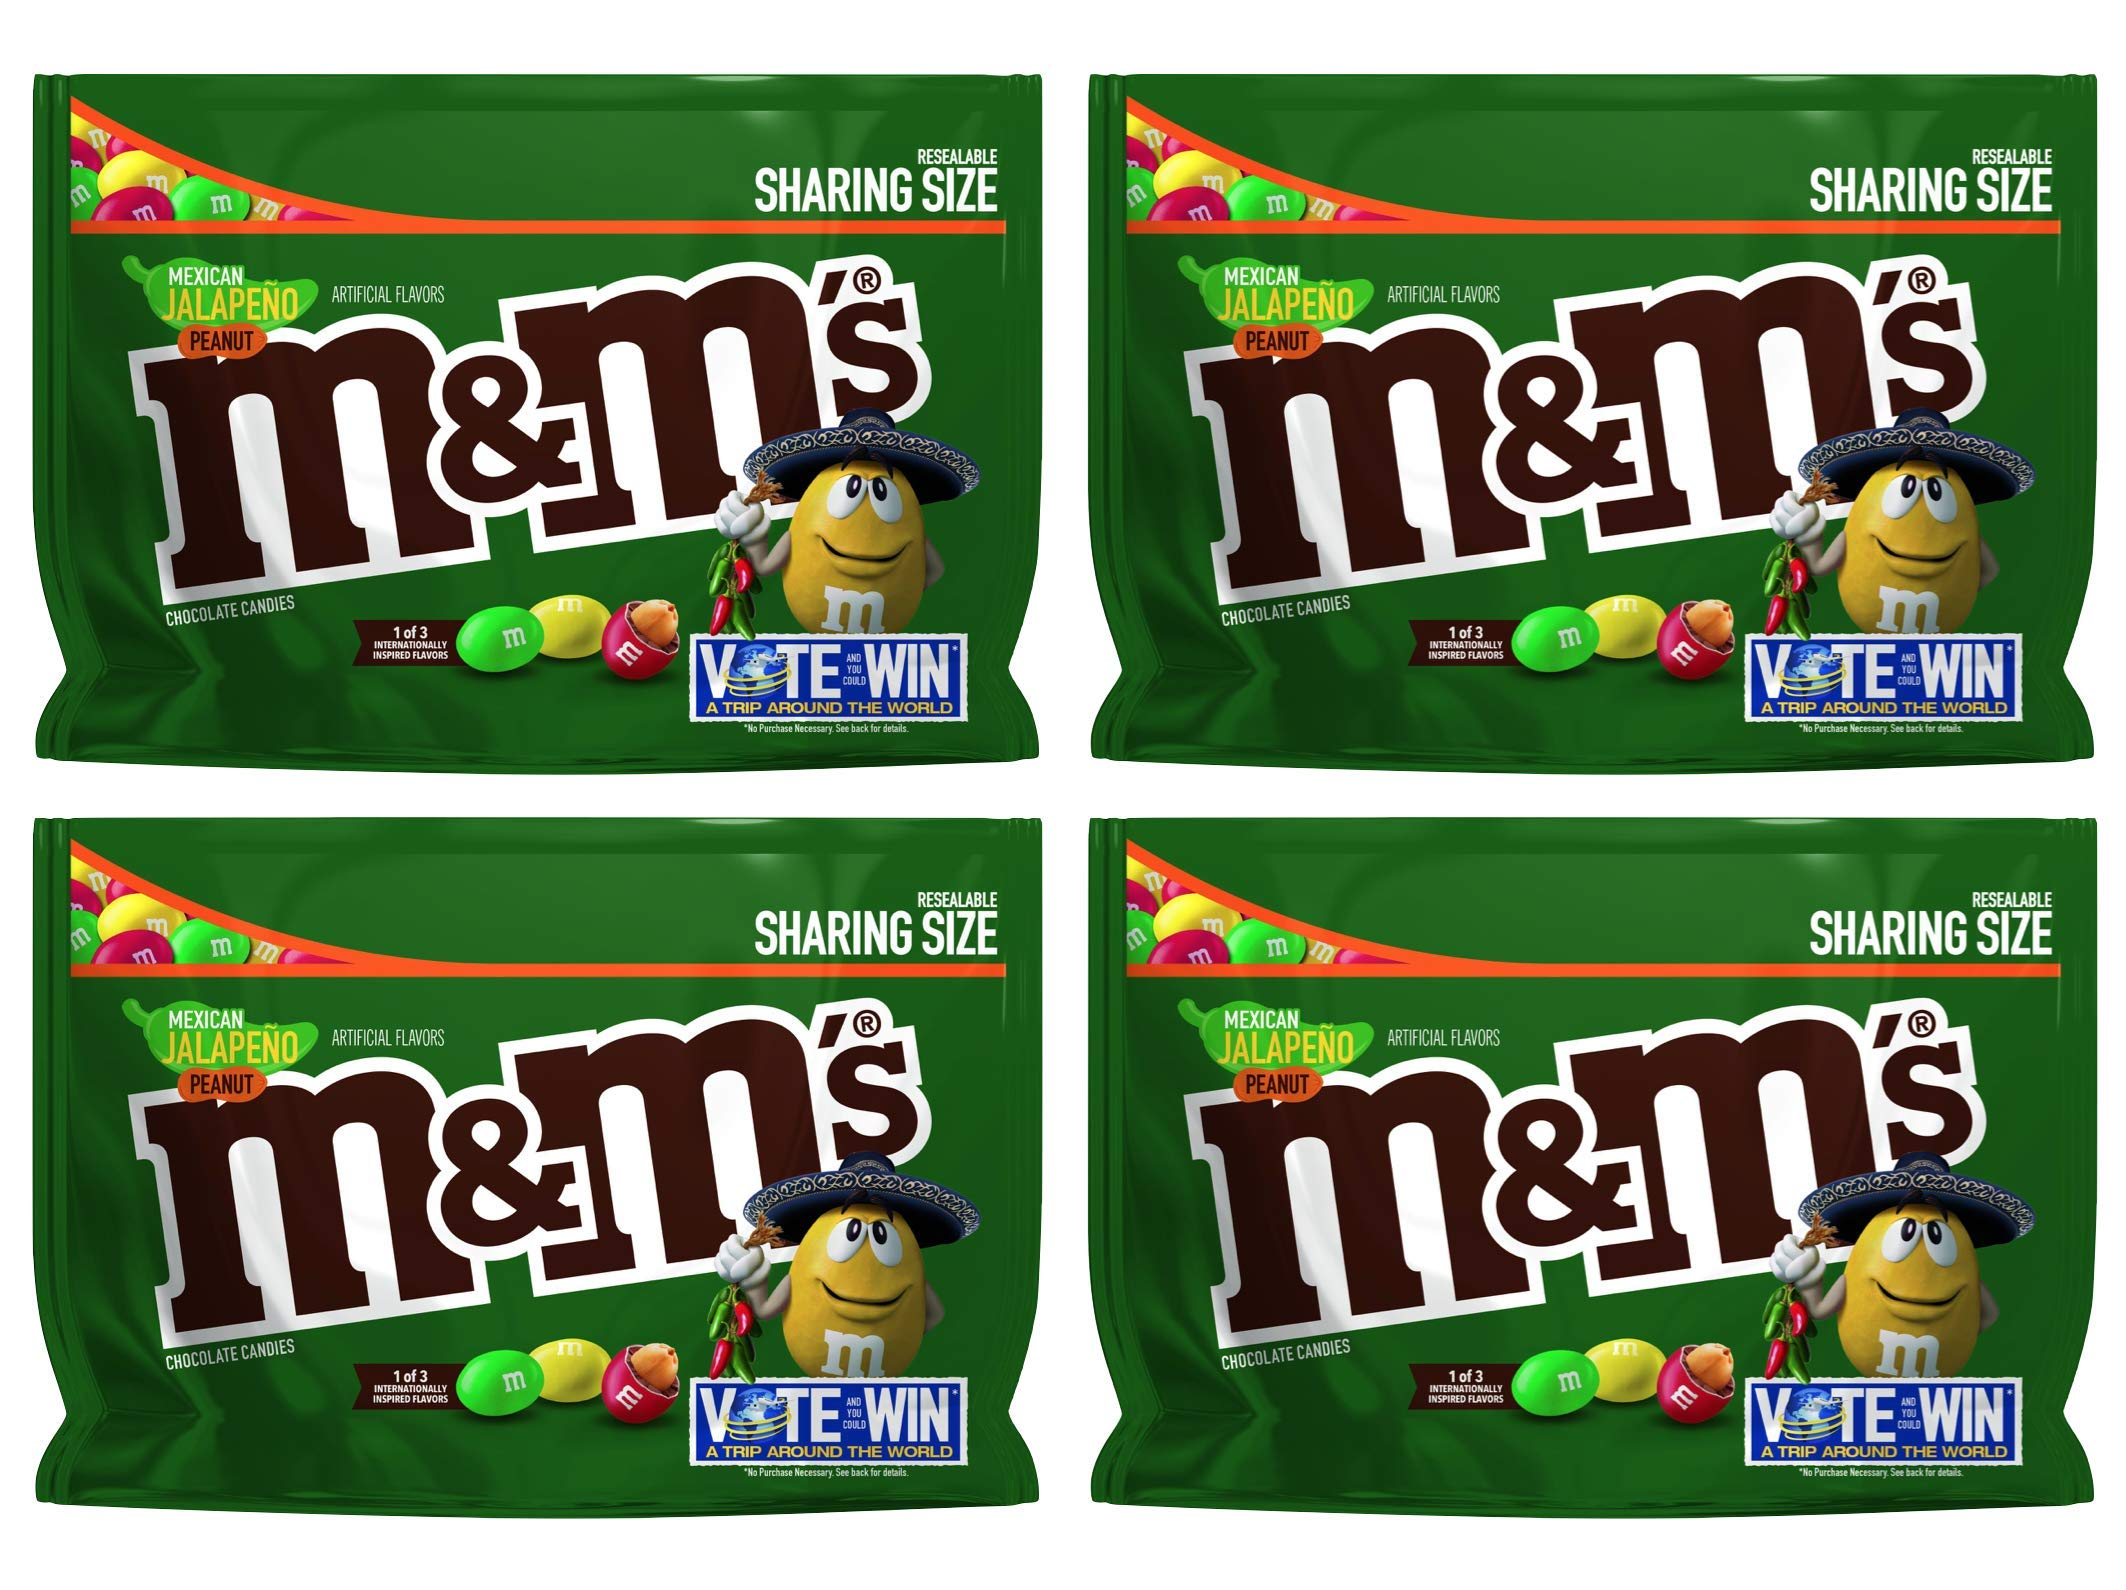 M&M's (Pack of 4) Chocolate Candy Flavor Vote Mexican Jalapeno Peanut Sharing Size, 9.6 Ounce Bag